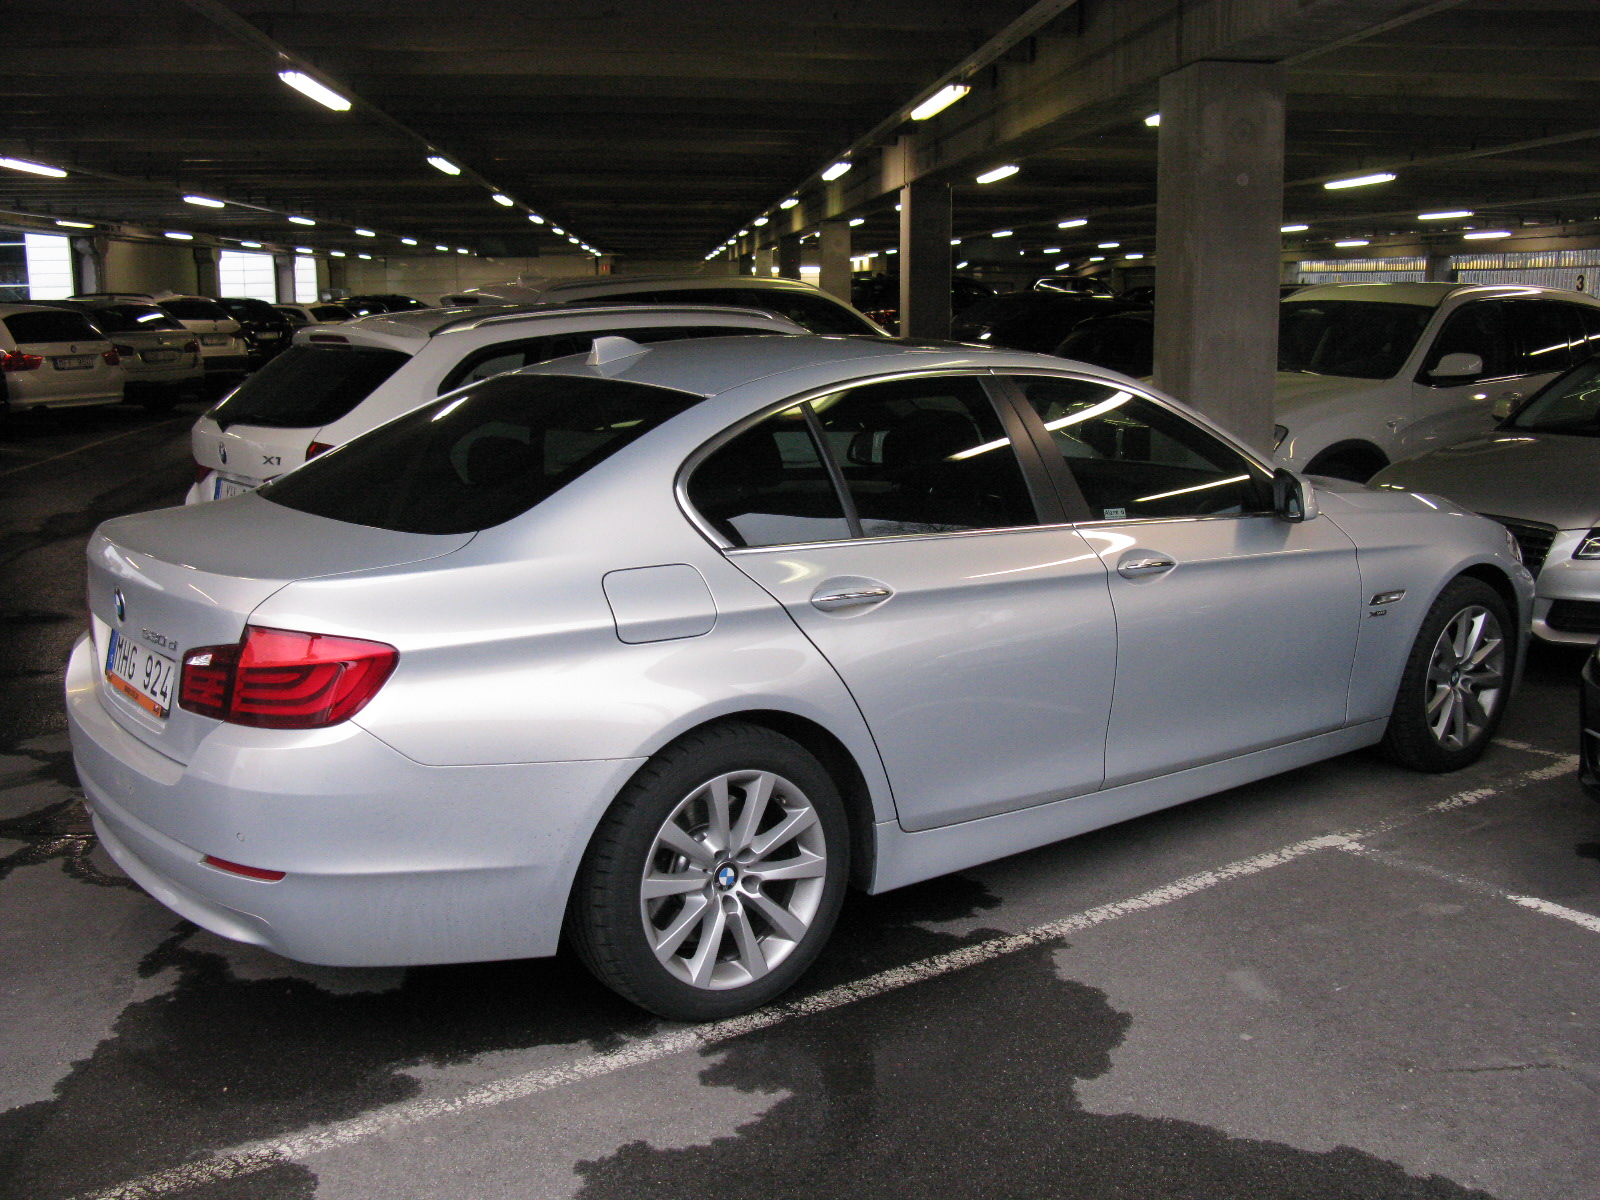 BMW 530d F10 | Flickr - Photo Sharing!